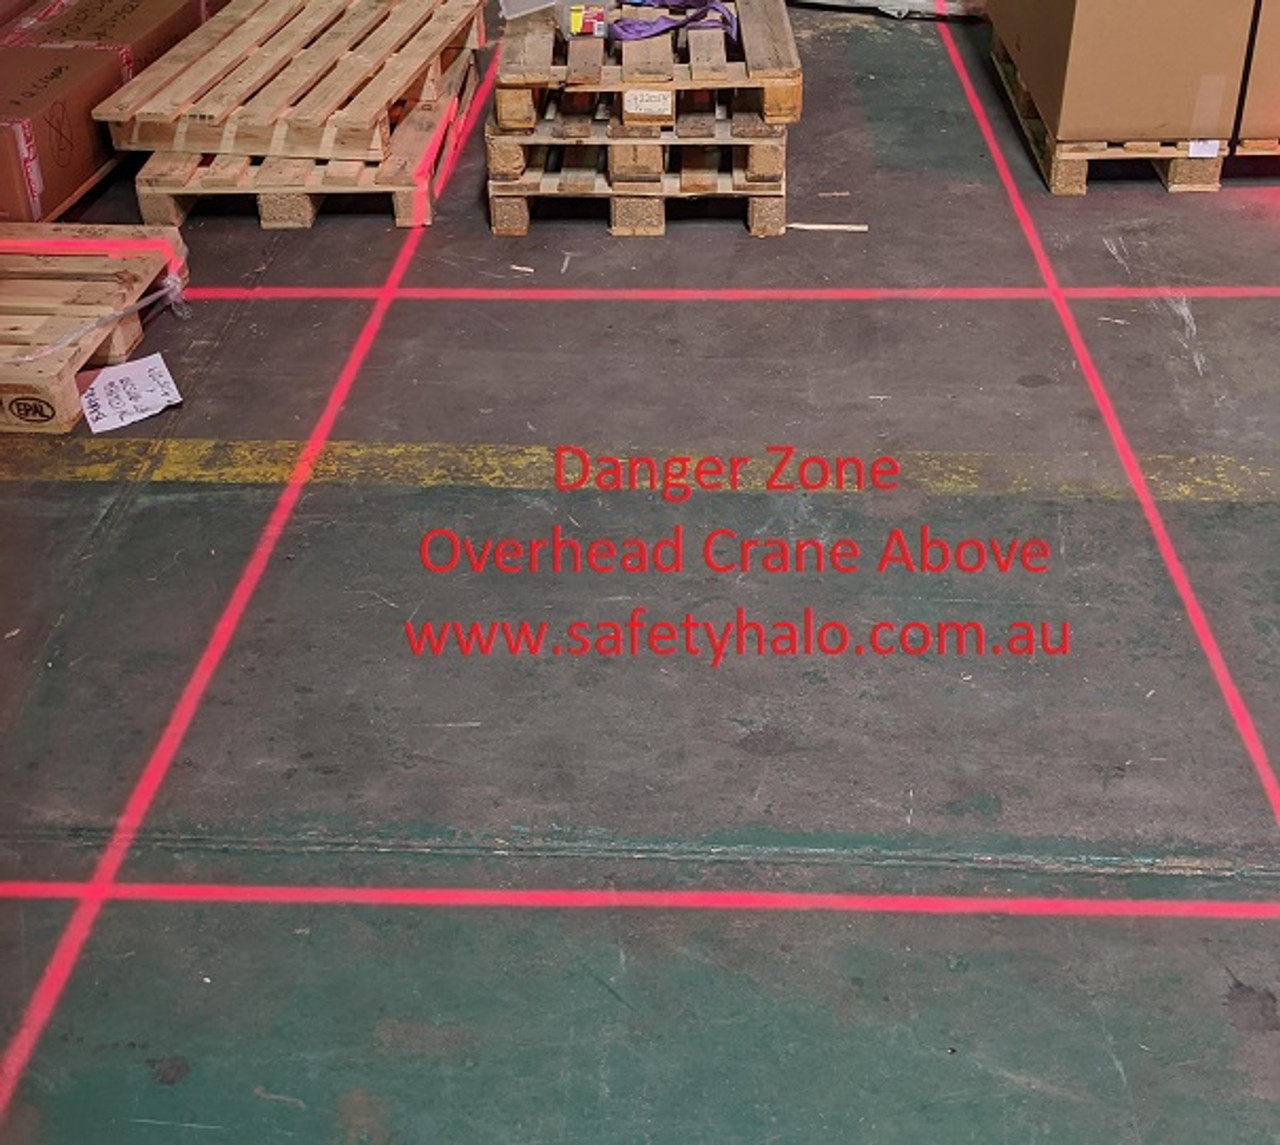 Laser Red Beam for Overhead Crane Awareness Warning Systems